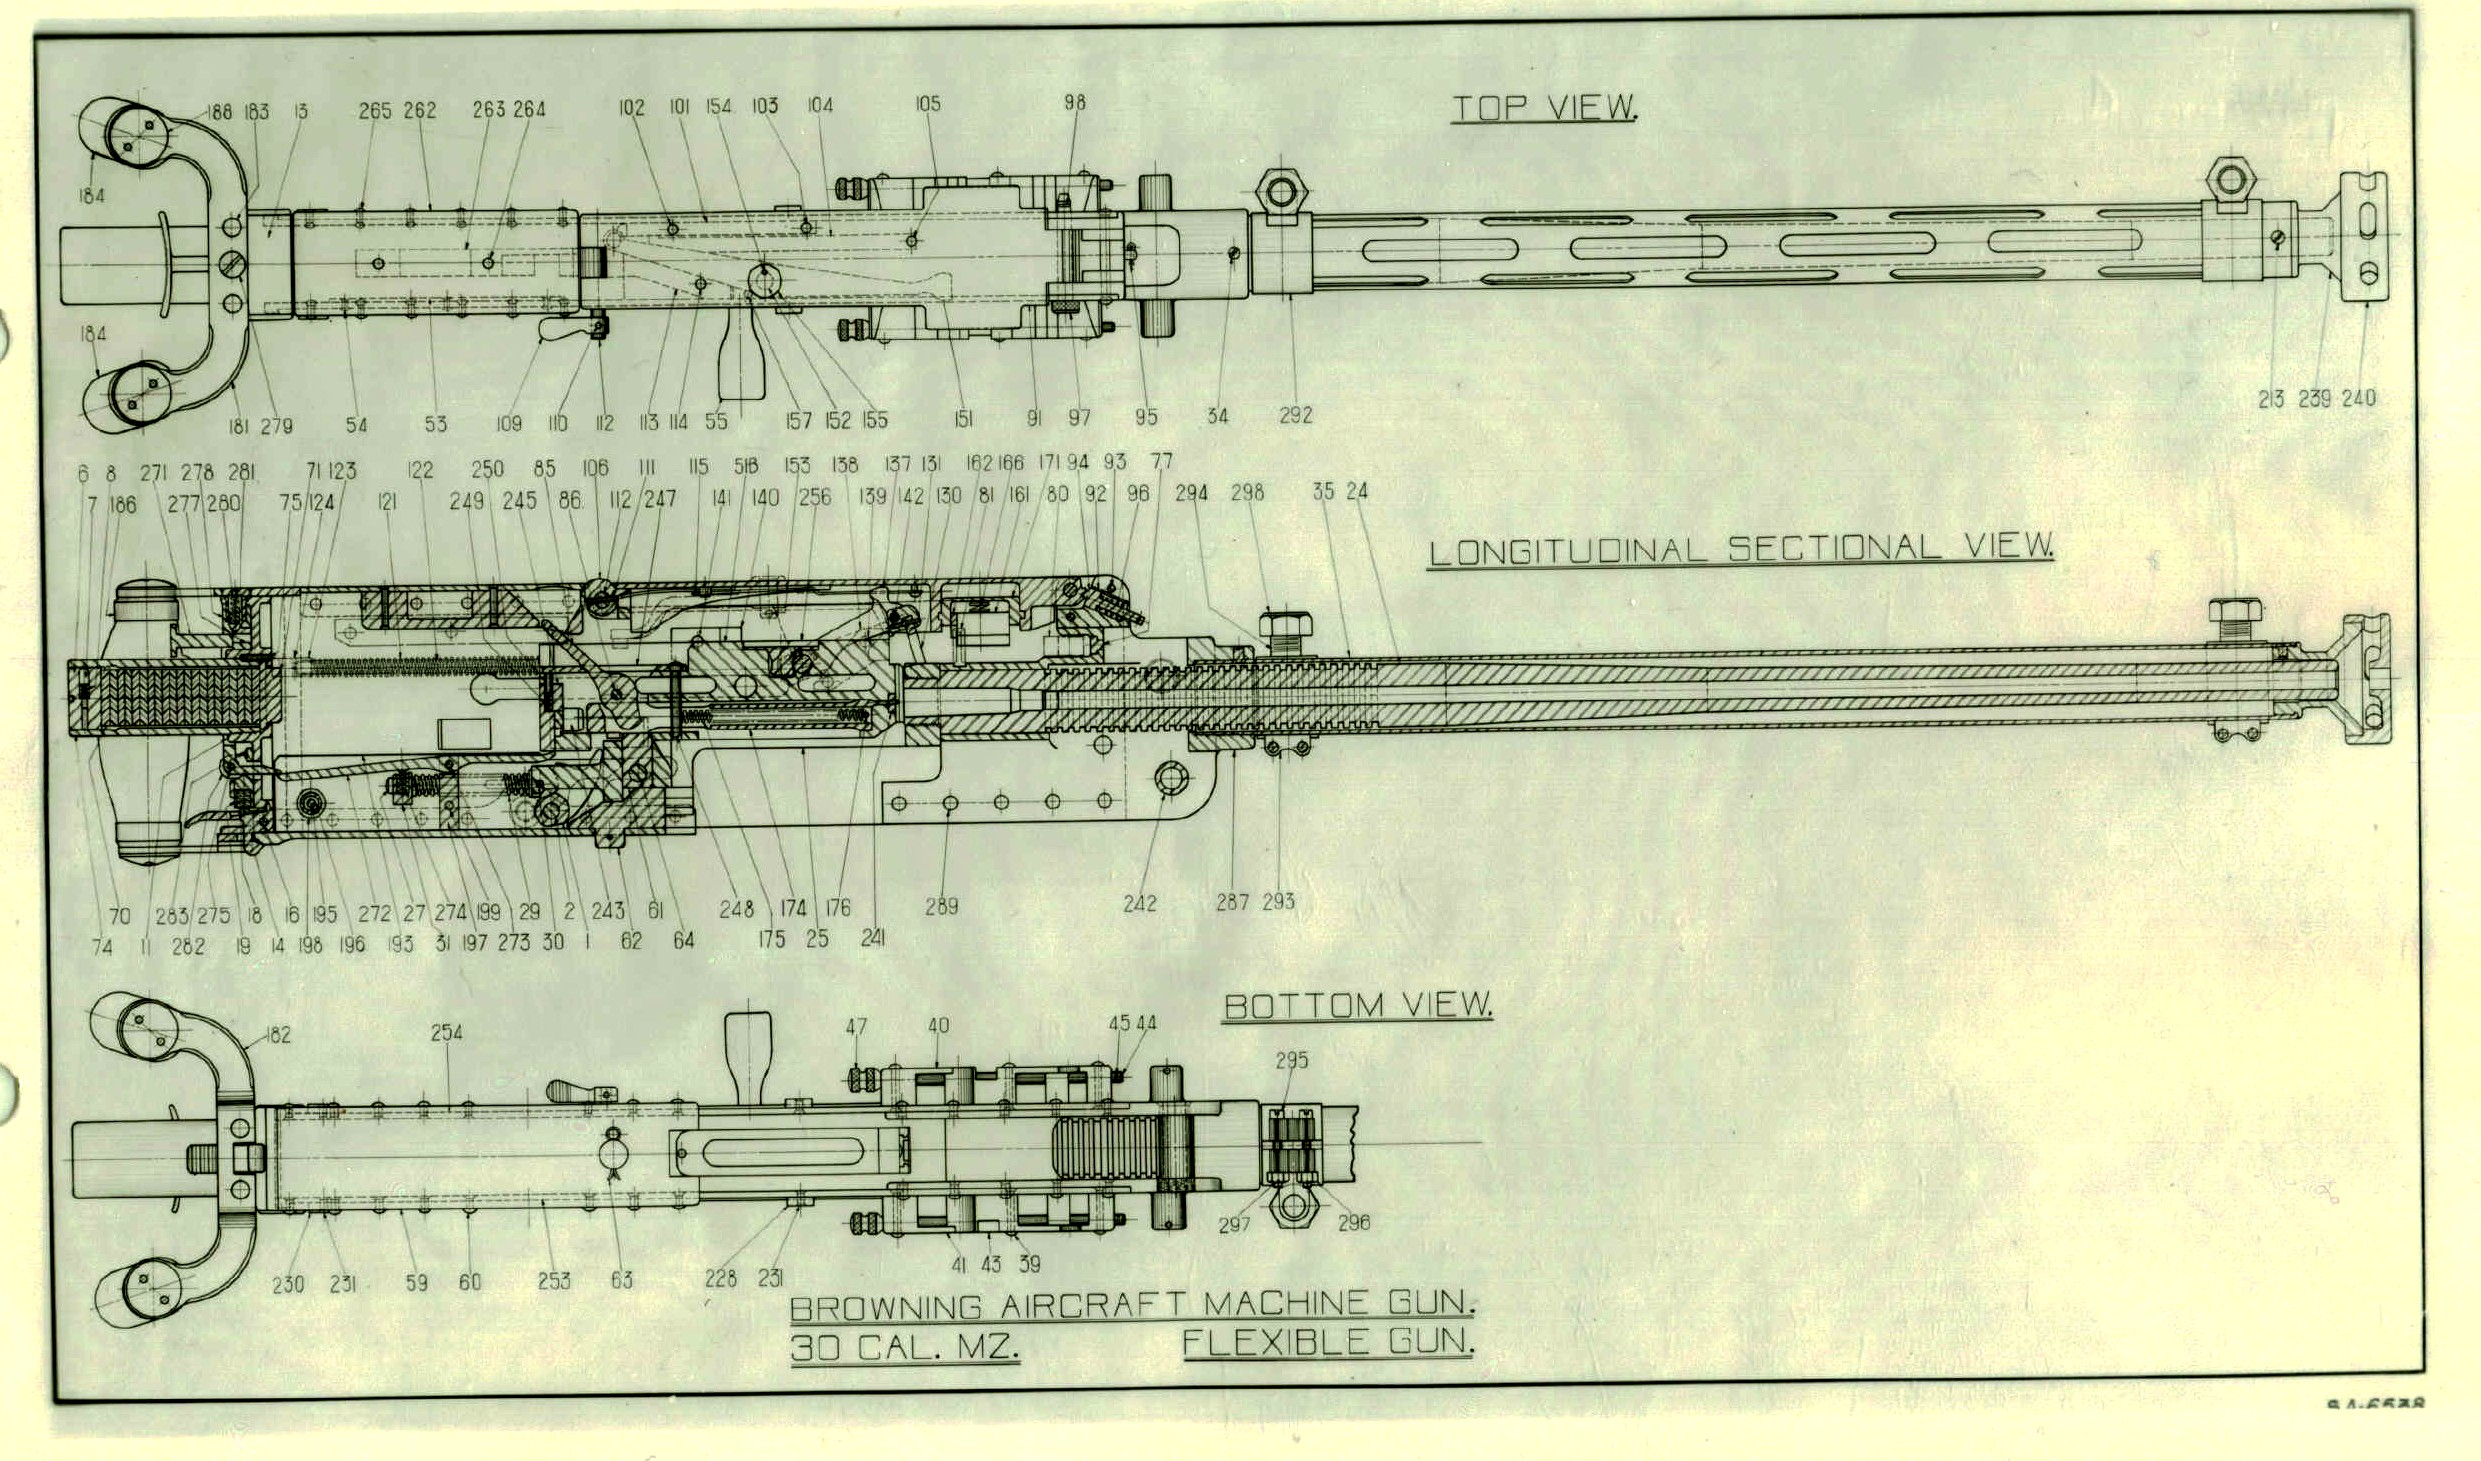 M2 Machine Gun Schematic Trusted Wiring Diagrams Freightliner Amu Diagram Springfield Armory Museum Archival Item Record M16 Rifle